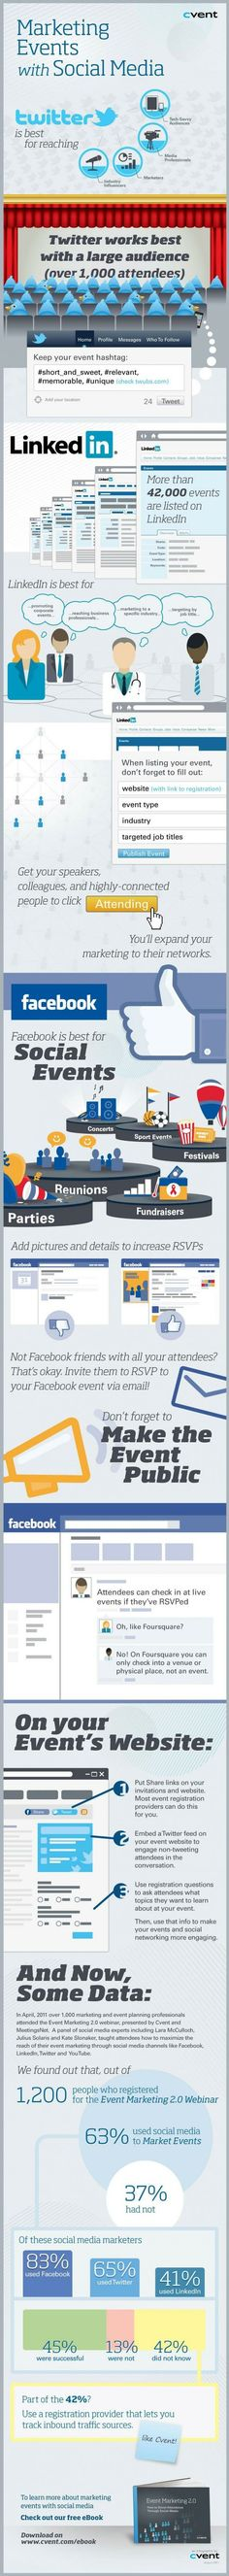 How to promote your Open House through Social Media